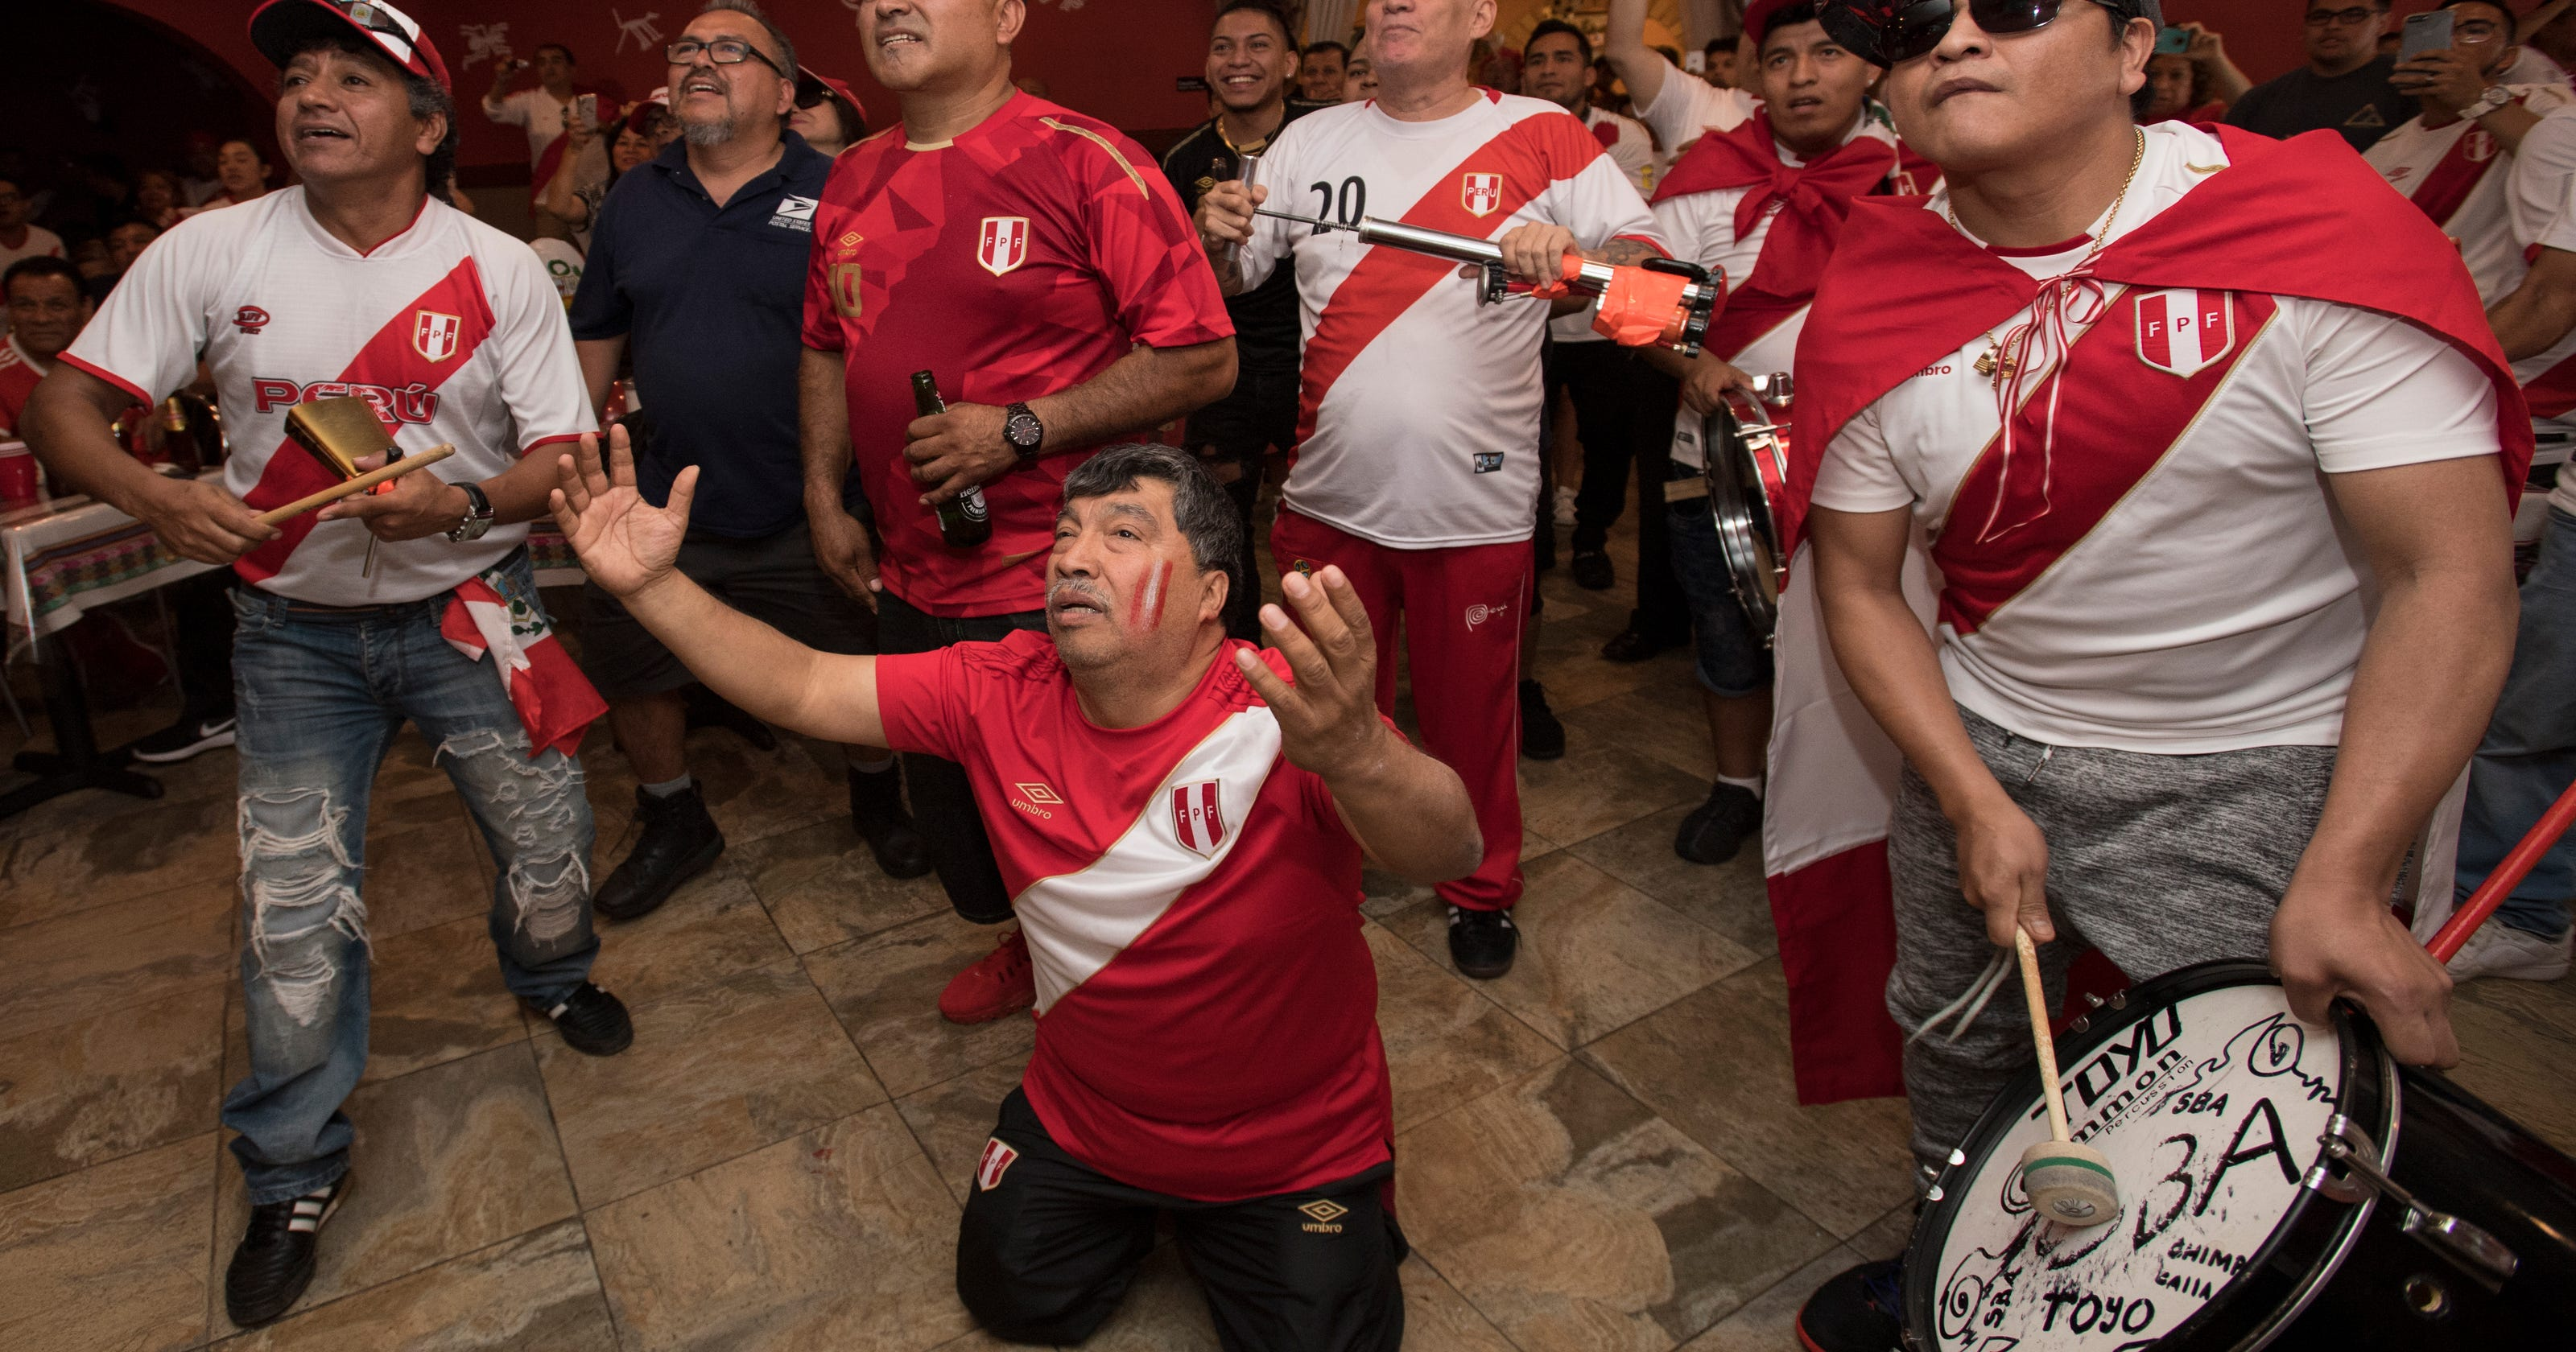 bcf8db70304 In Paterson, cheers as Peru ends 36-year World Cup drought